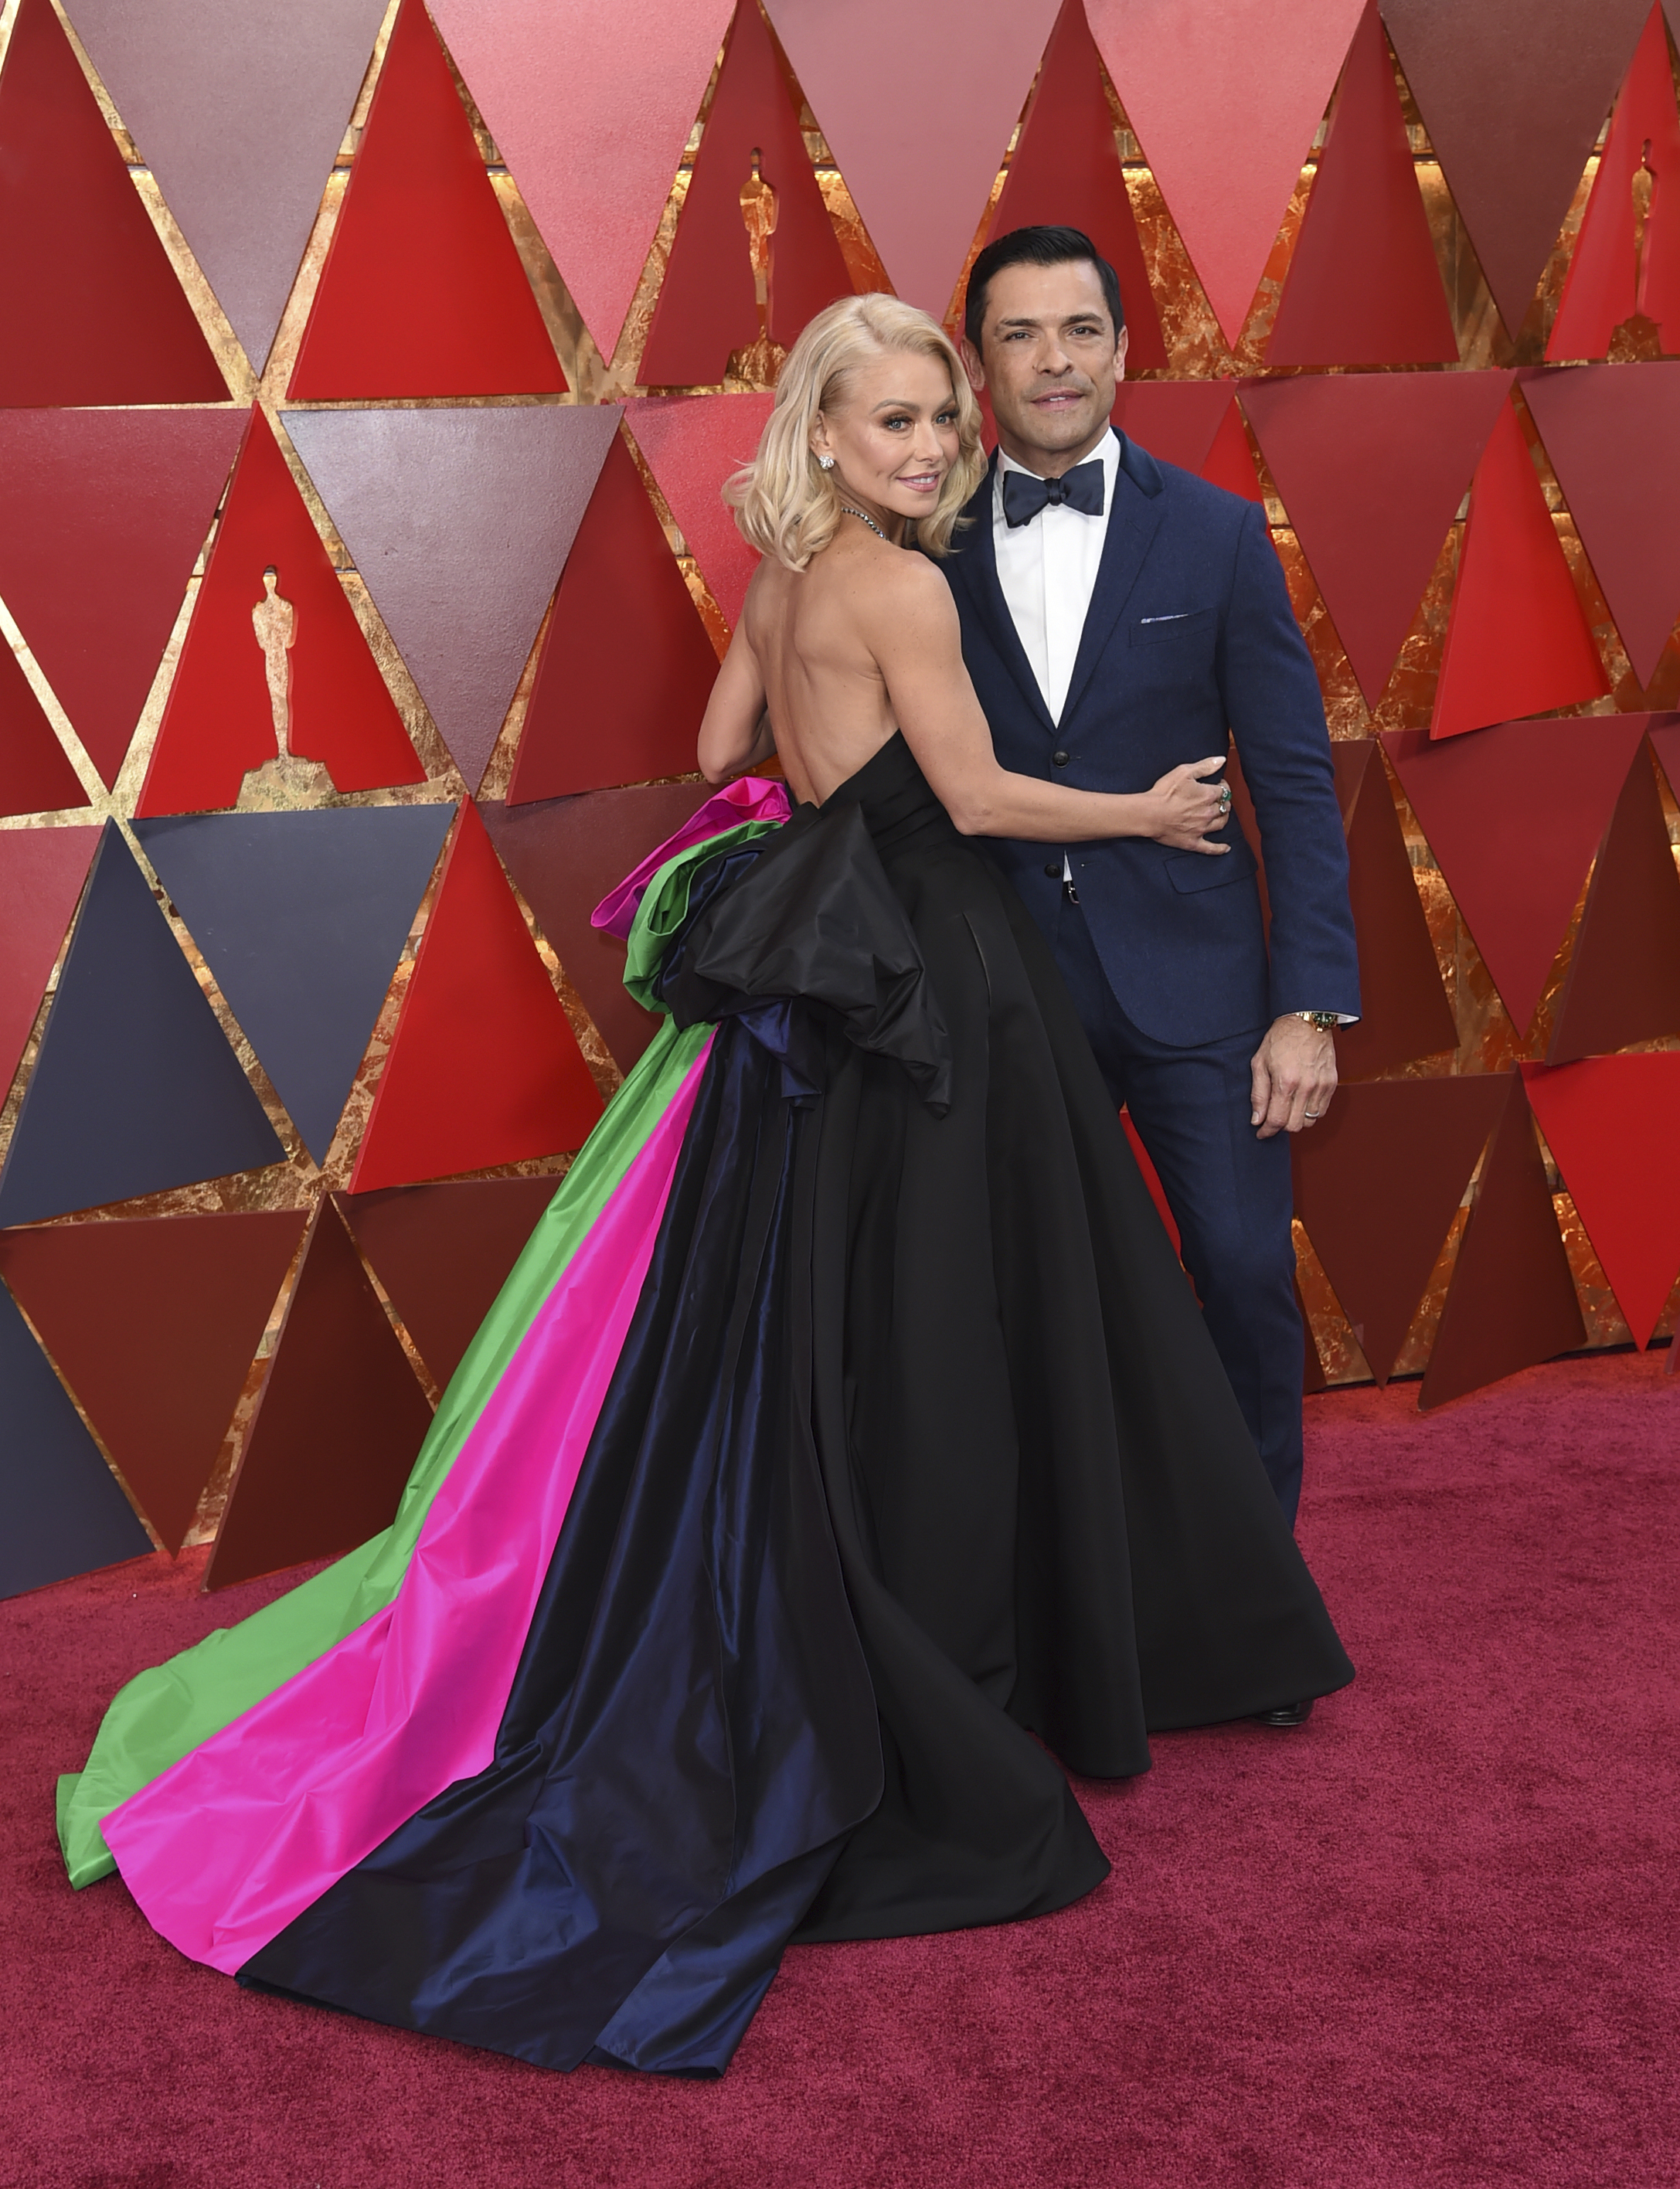 <div class='meta'><div class='origin-logo' data-origin='none'></div><span class='caption-text' data-credit='Richard Shotwell/Invision/AP'>Kelly Ripa, left, and Mark Consuelos arrive at the Oscars on Sunday, March 4, 2018, at the Dolby Theatre in Los Angeles.</span></div>